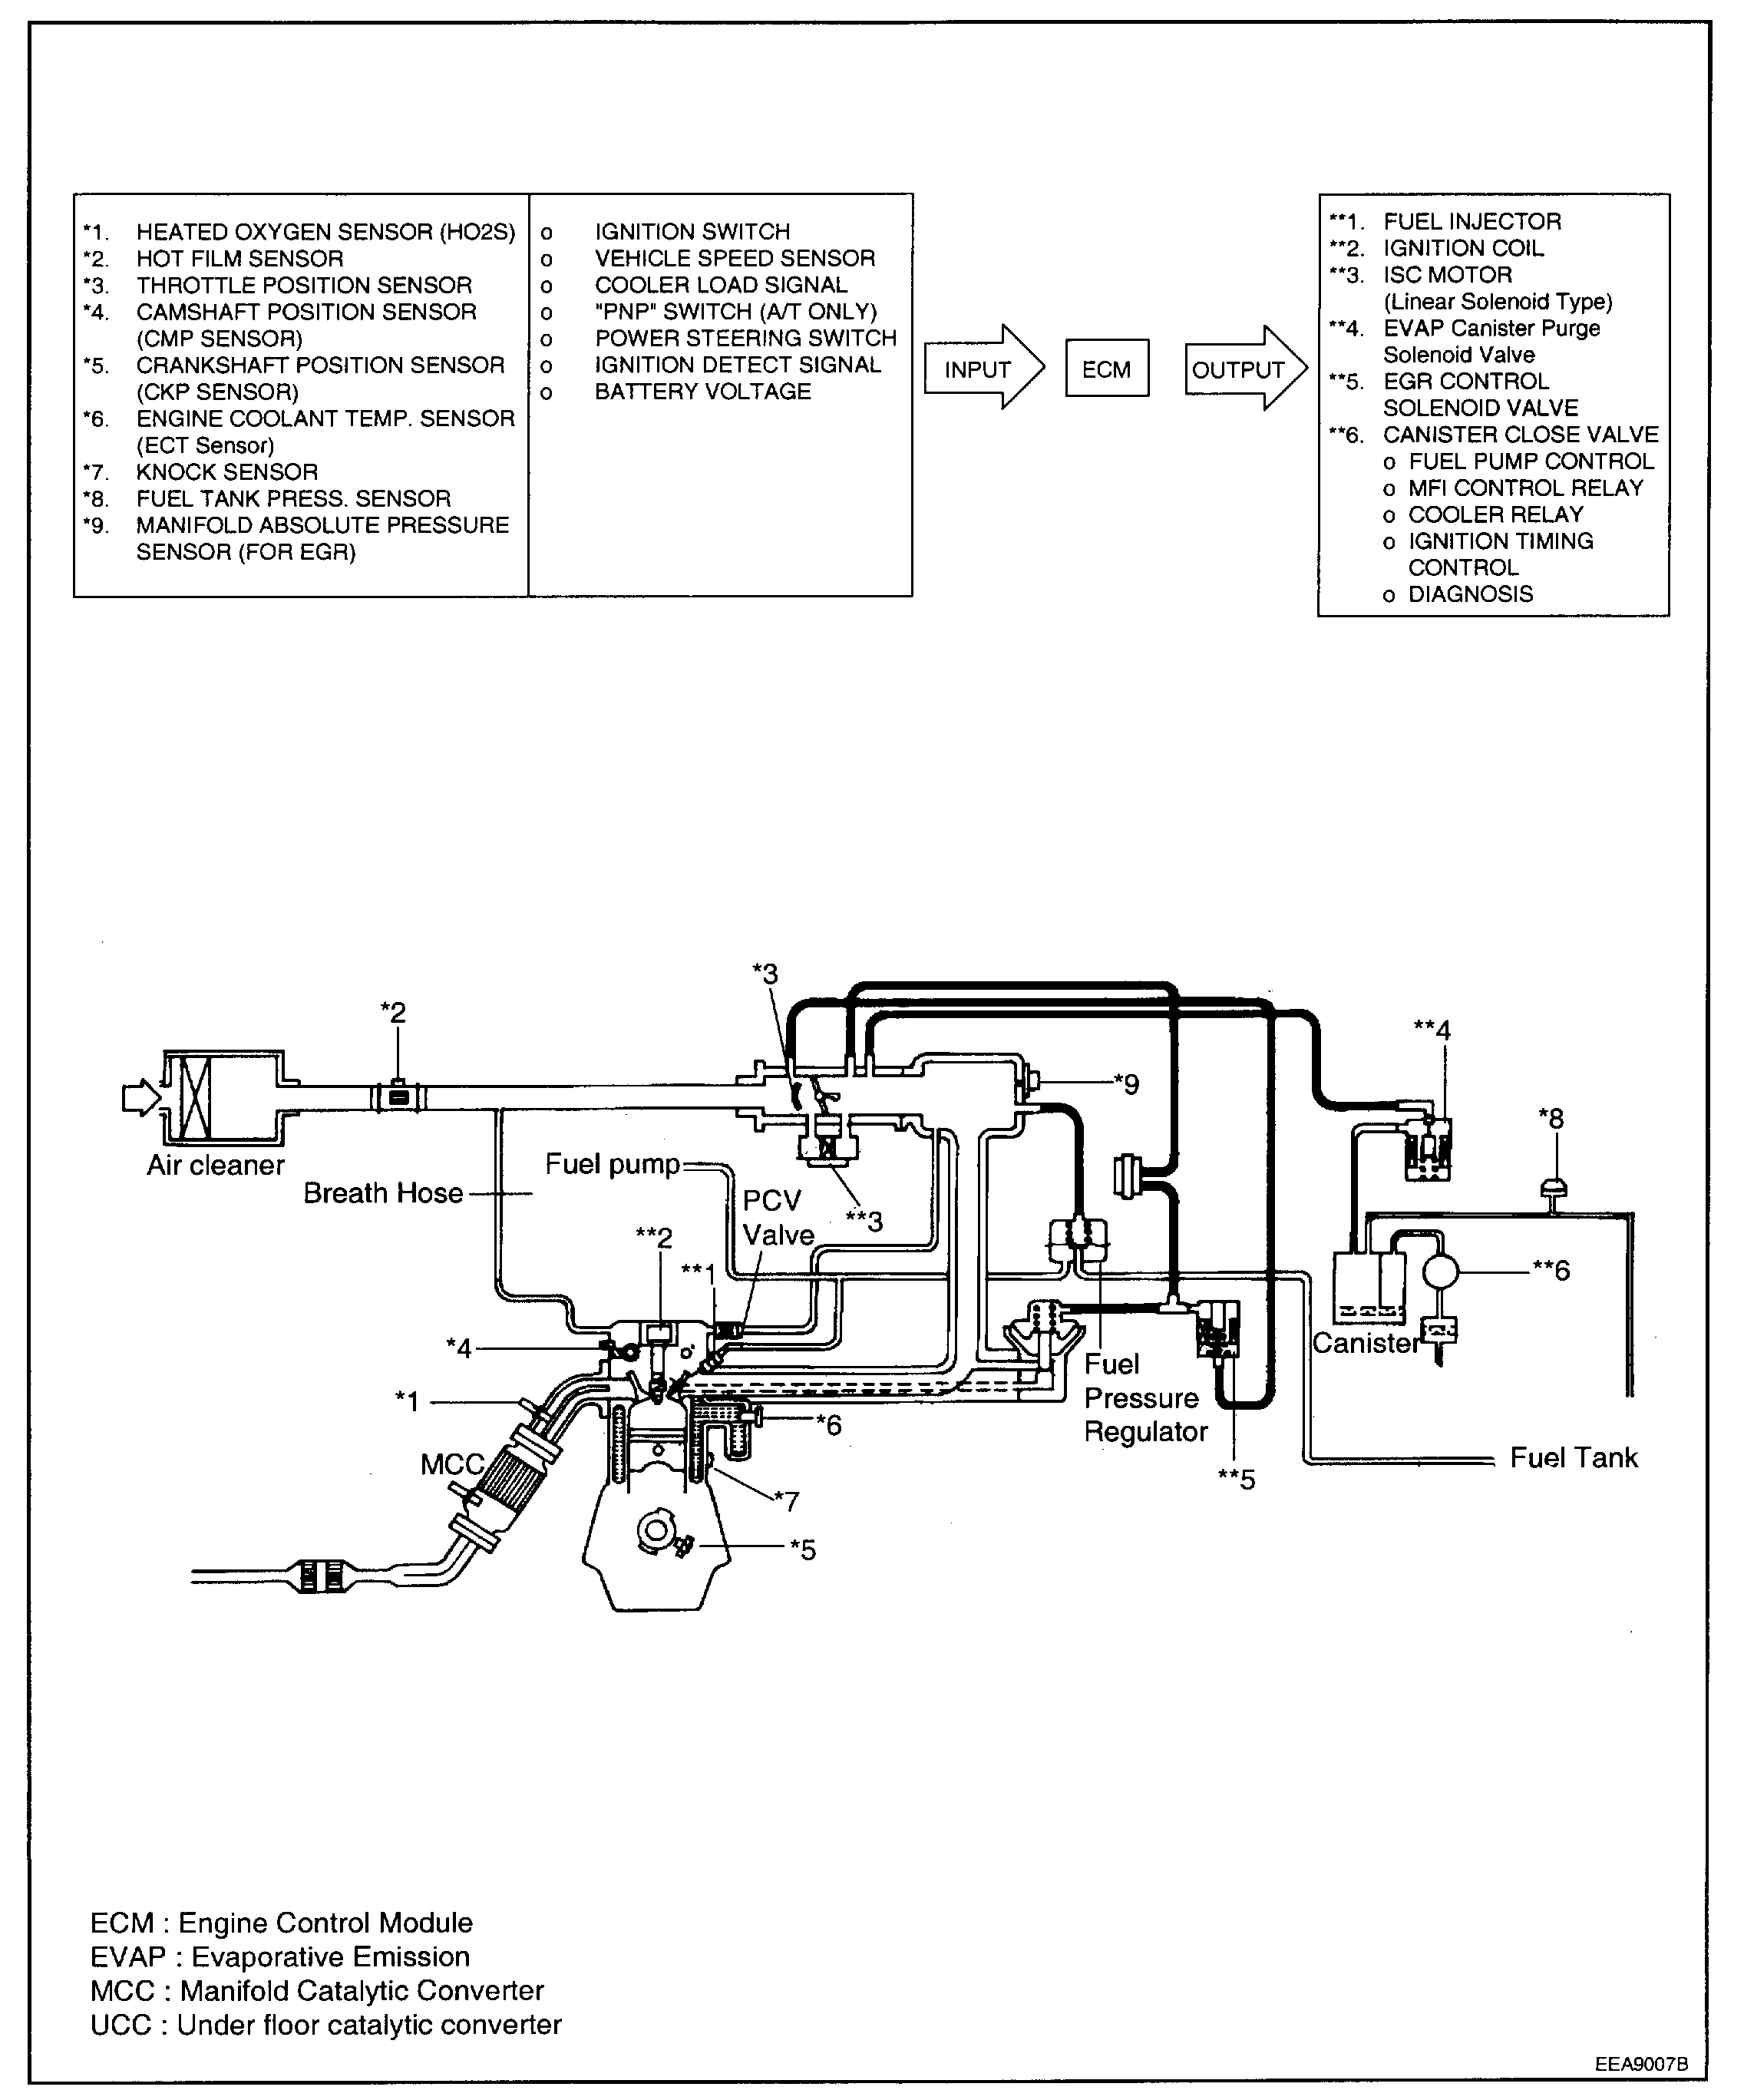 Vacuum Diagram: I Have High Idle Replaced All the Vacuum